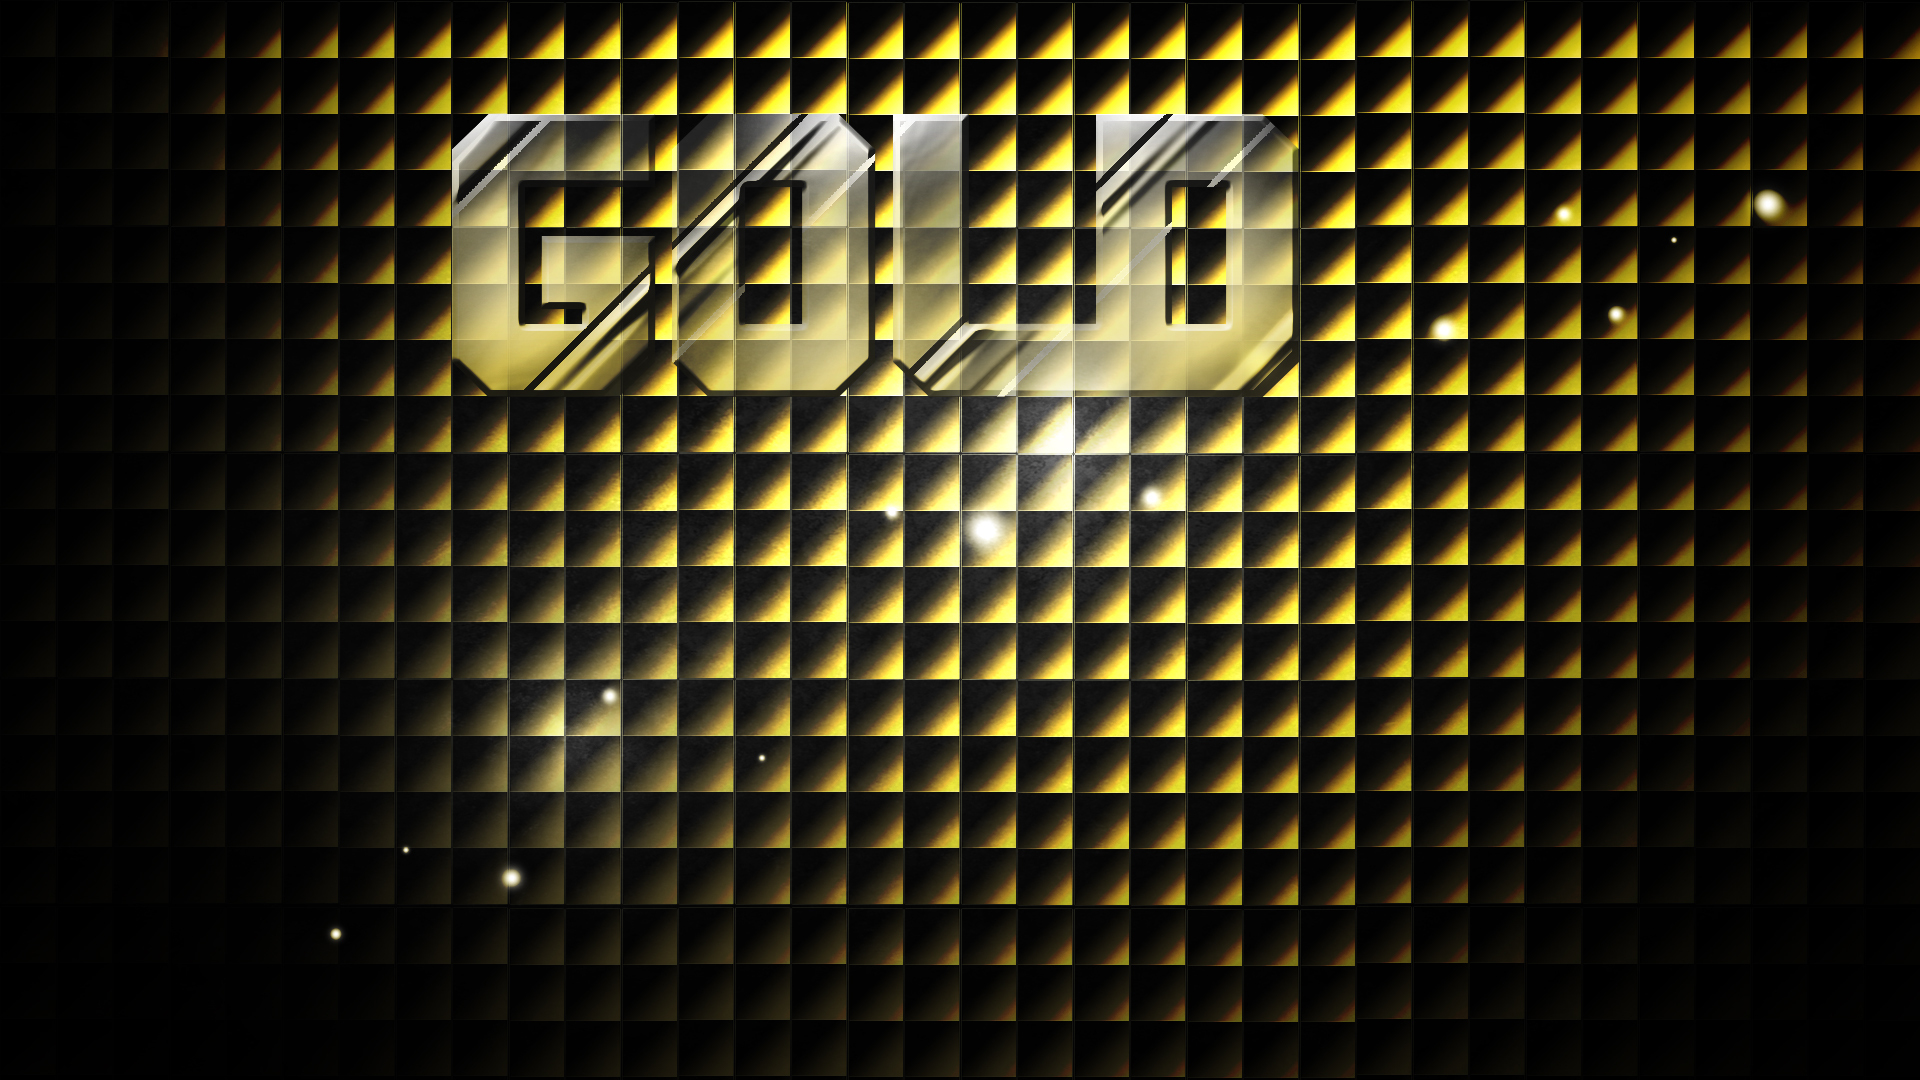 Gold Wallpaper By Hardii